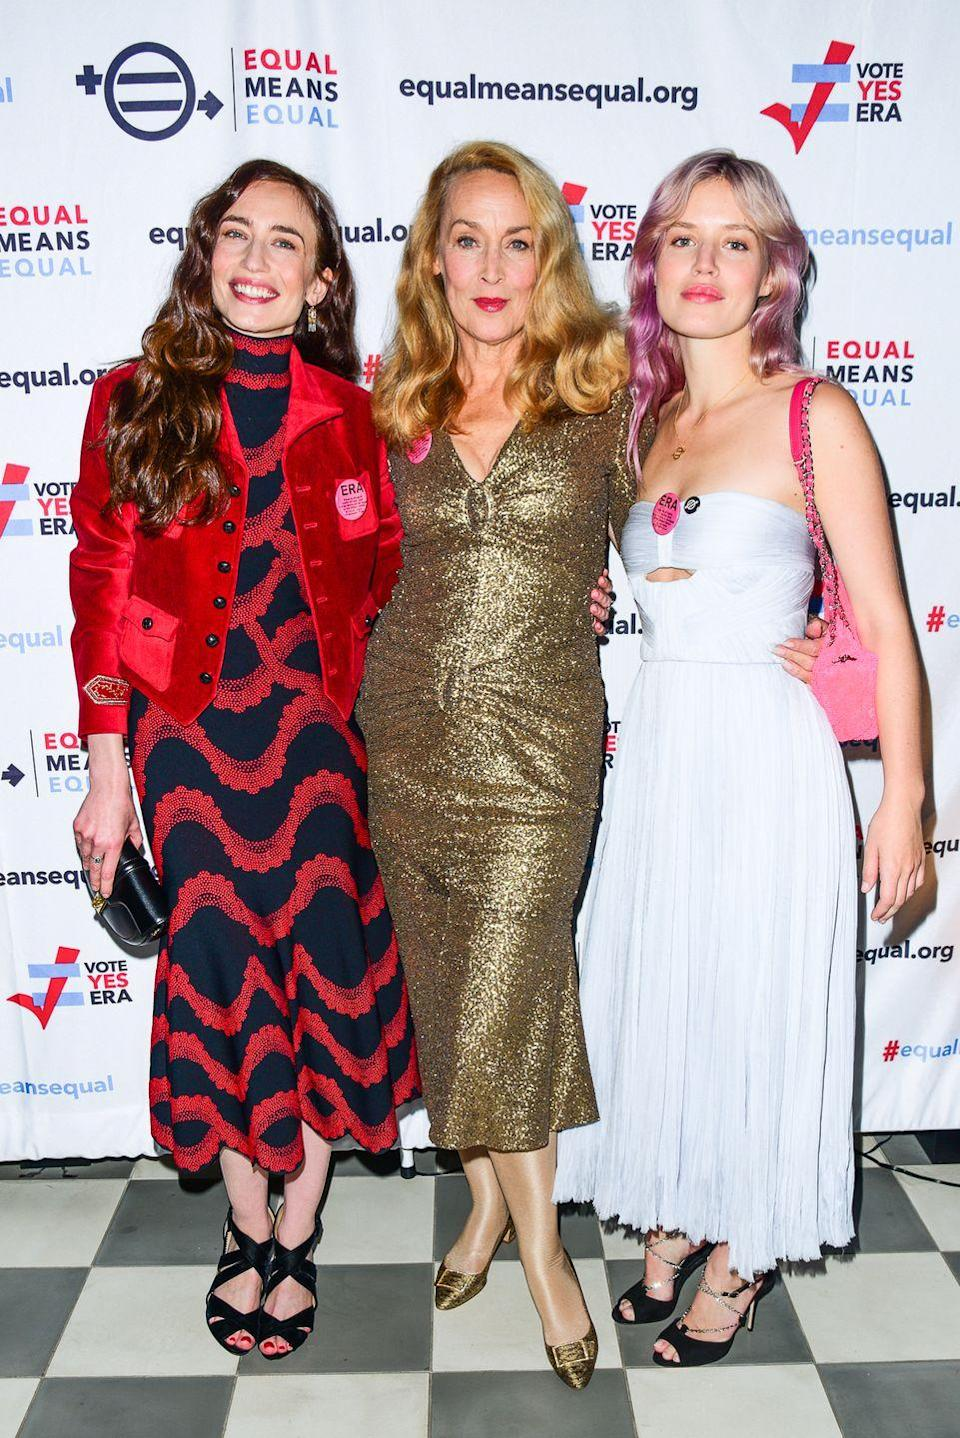 <p>Georgia May and Elizabeth Jagger share their famous mother Jerry Hall's height and wide jawline. </p><p>Georgia May is a supermodel, with runway credentials walking for the likes of Ashley Williams and Marc Jacobs while Elizabeth is a lobyist, model and actress. <br></p>